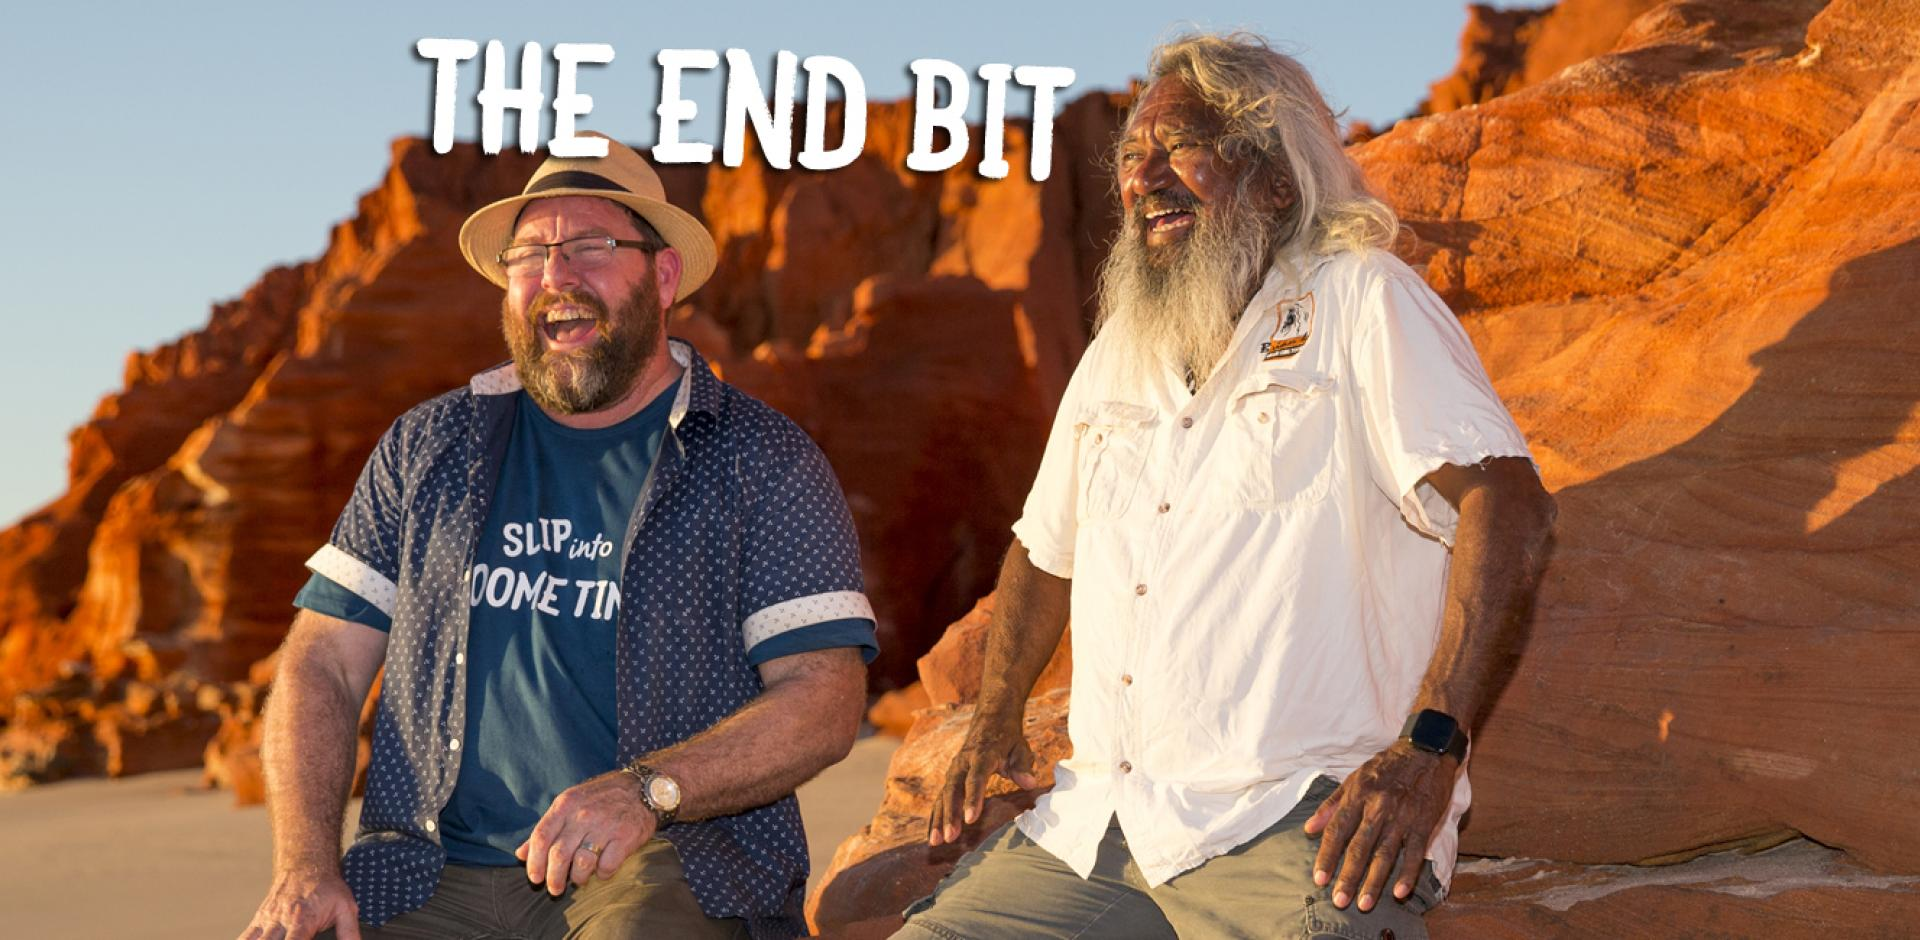 Broome Time 2 - the End Bit